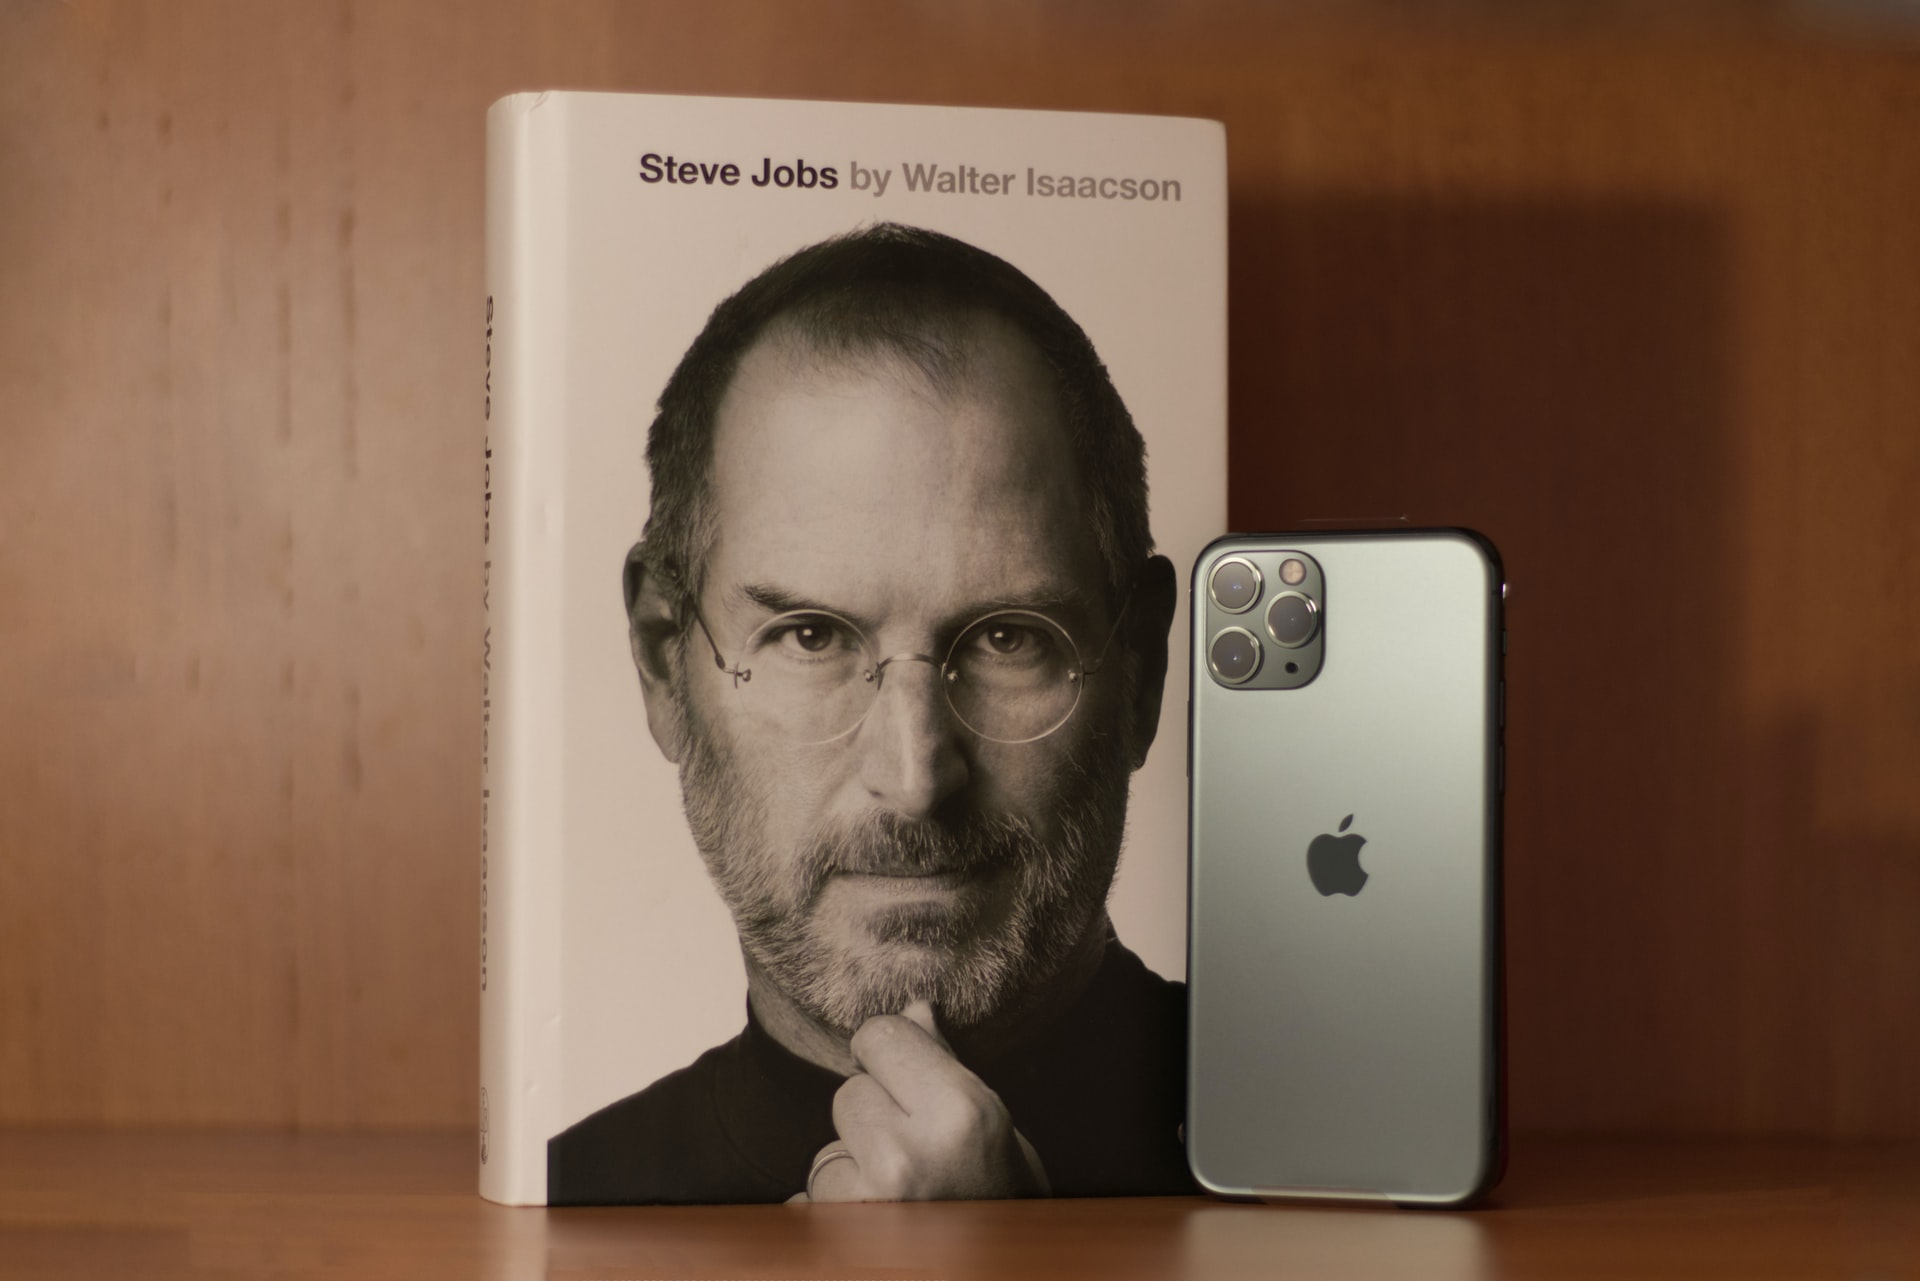 Mesa com livro de Steve Jobs e Iphone